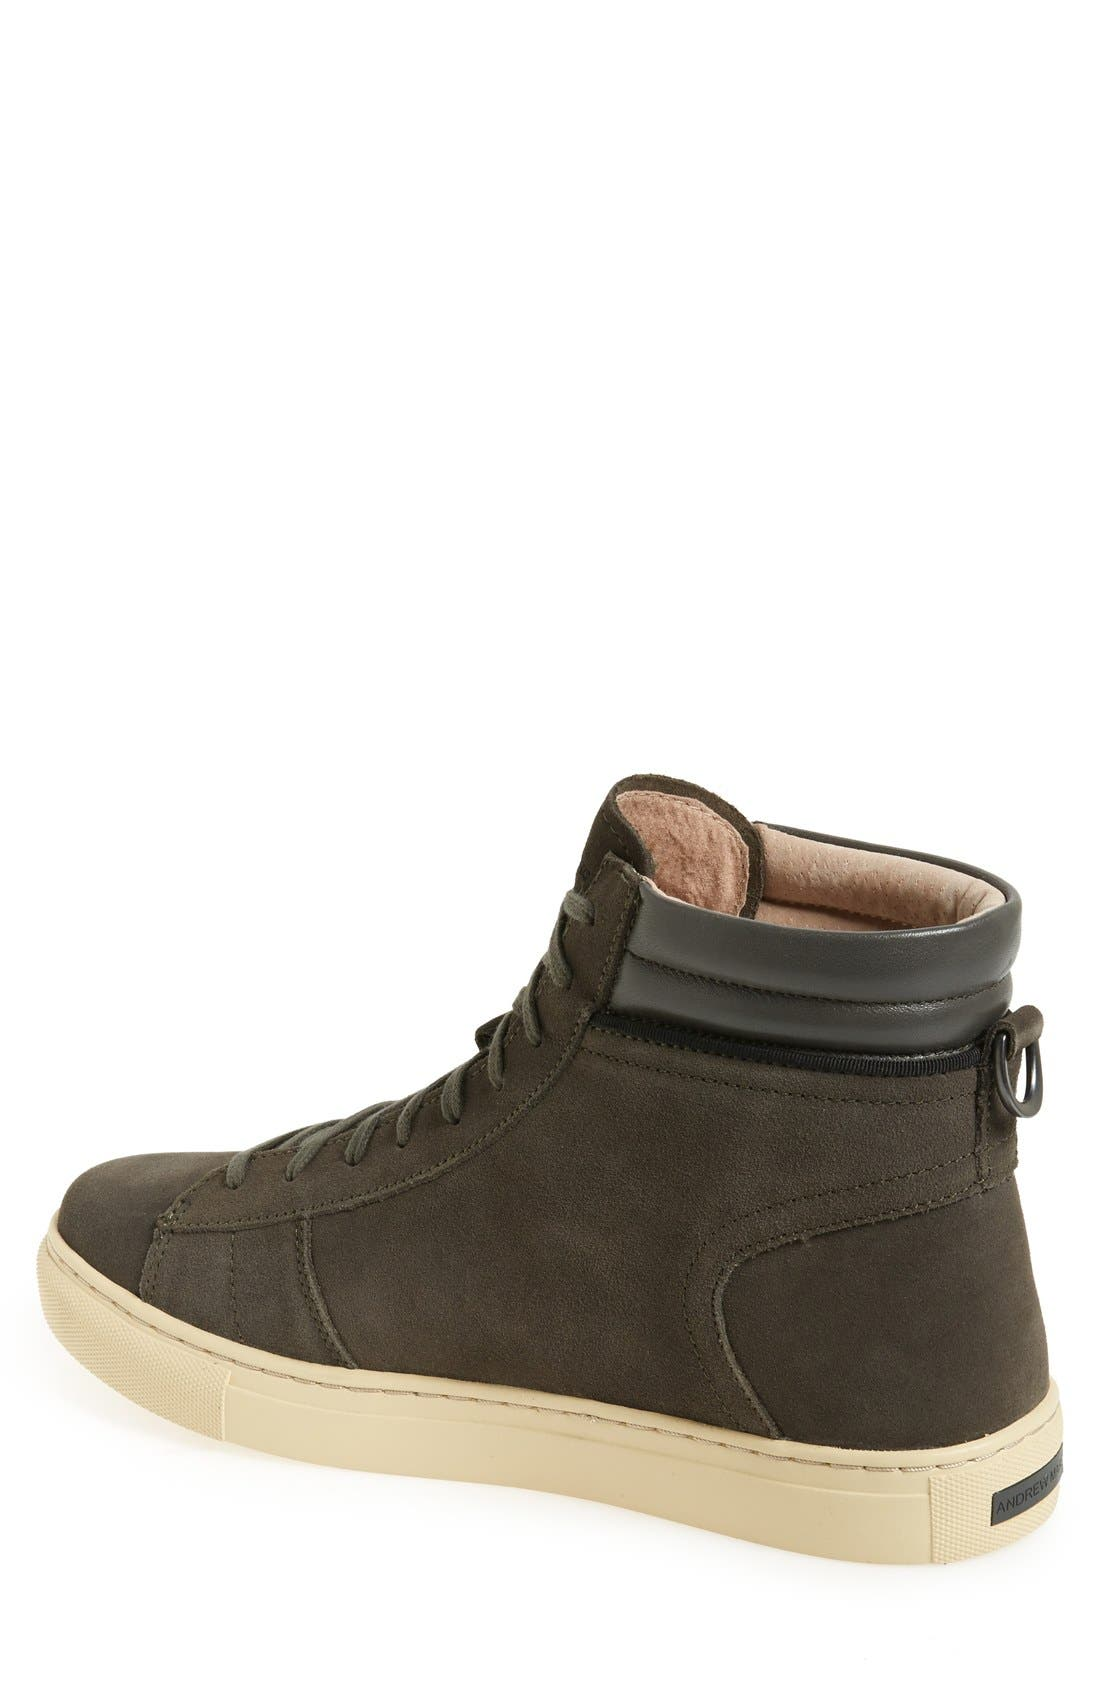 'Remsen' High Top Sneaker,                             Alternate thumbnail 2, color,                             038